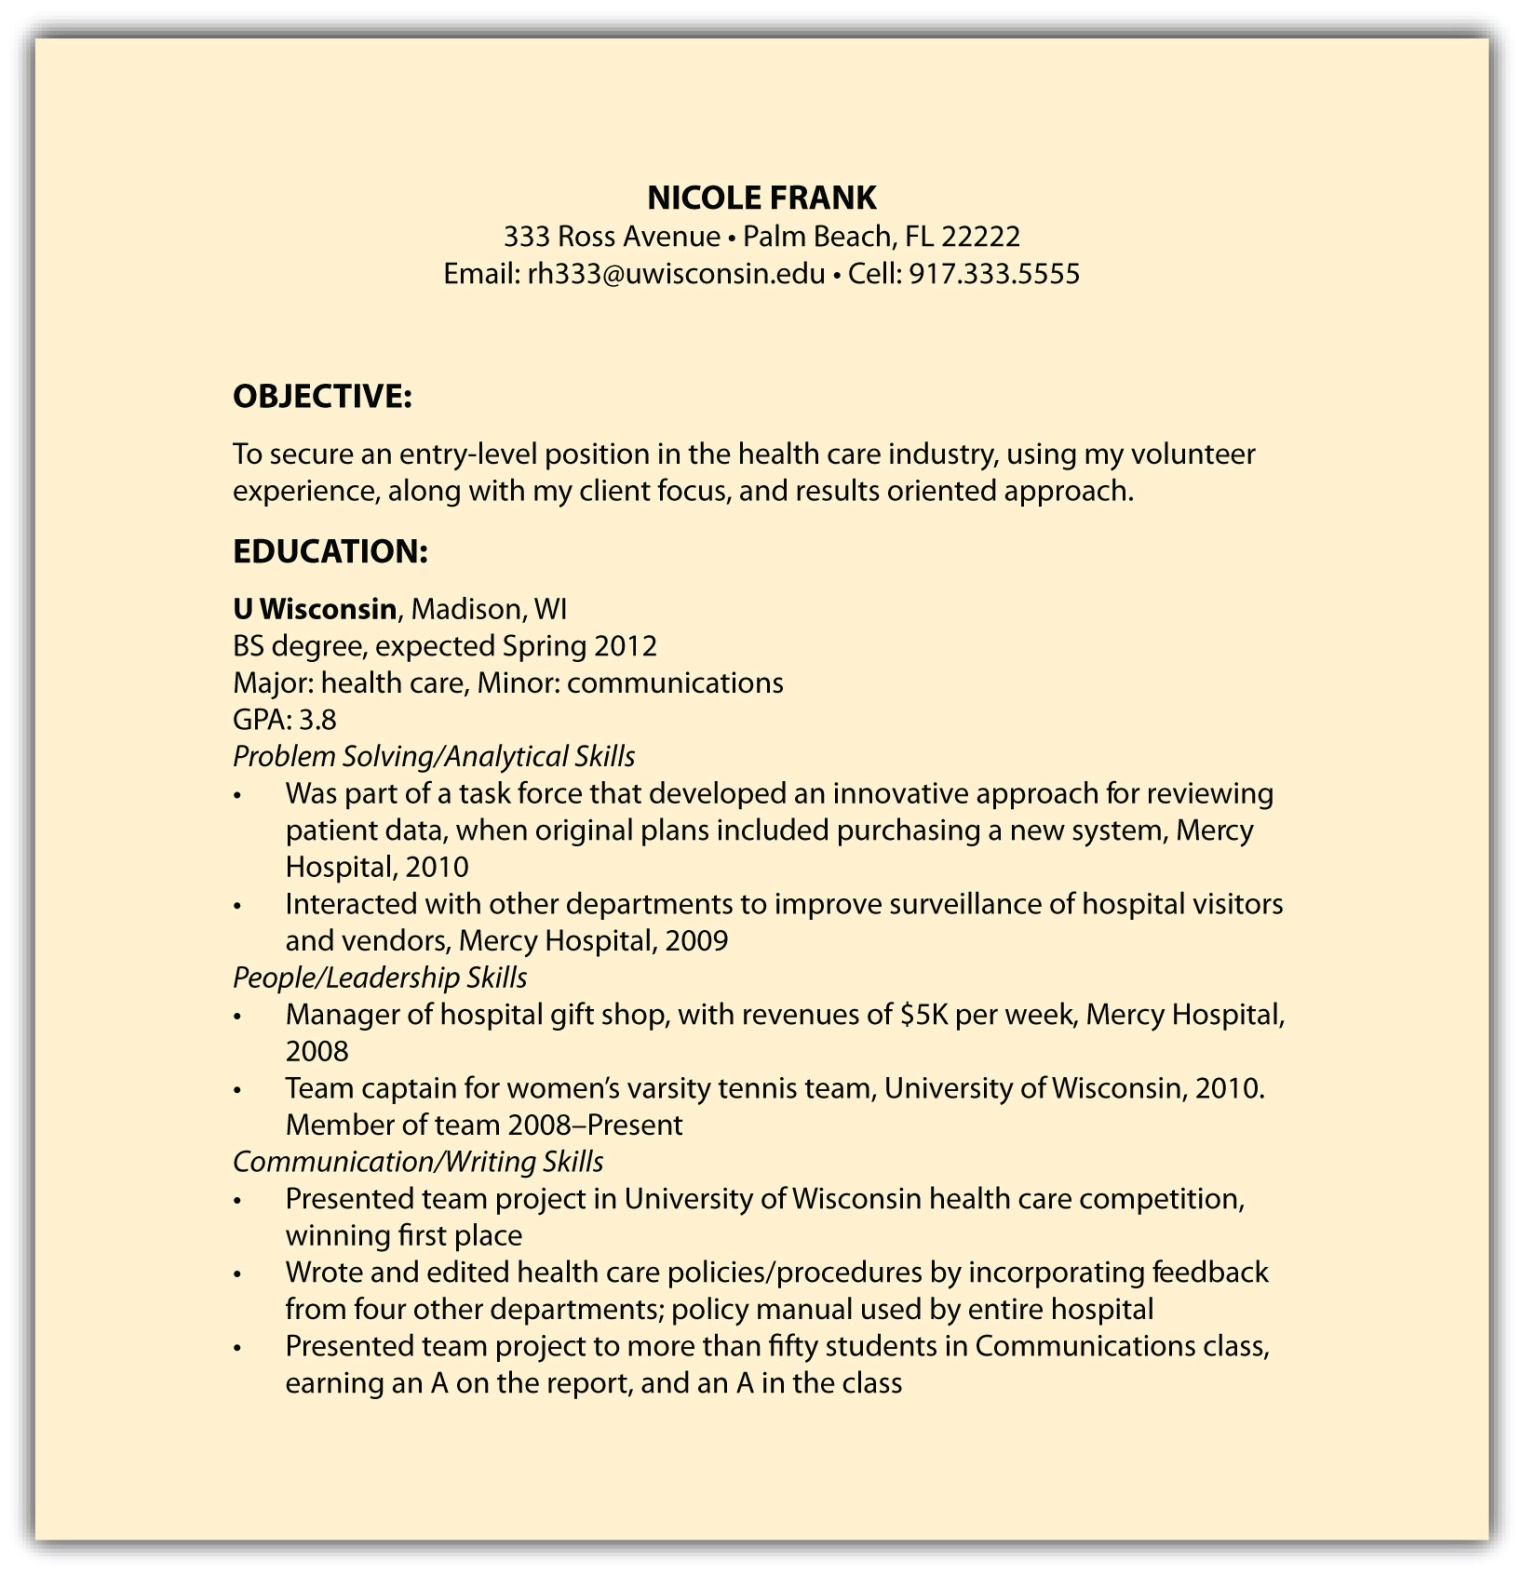 Sample Job Resumes Examples: Other Résumé Formats, Including Functional Résumés